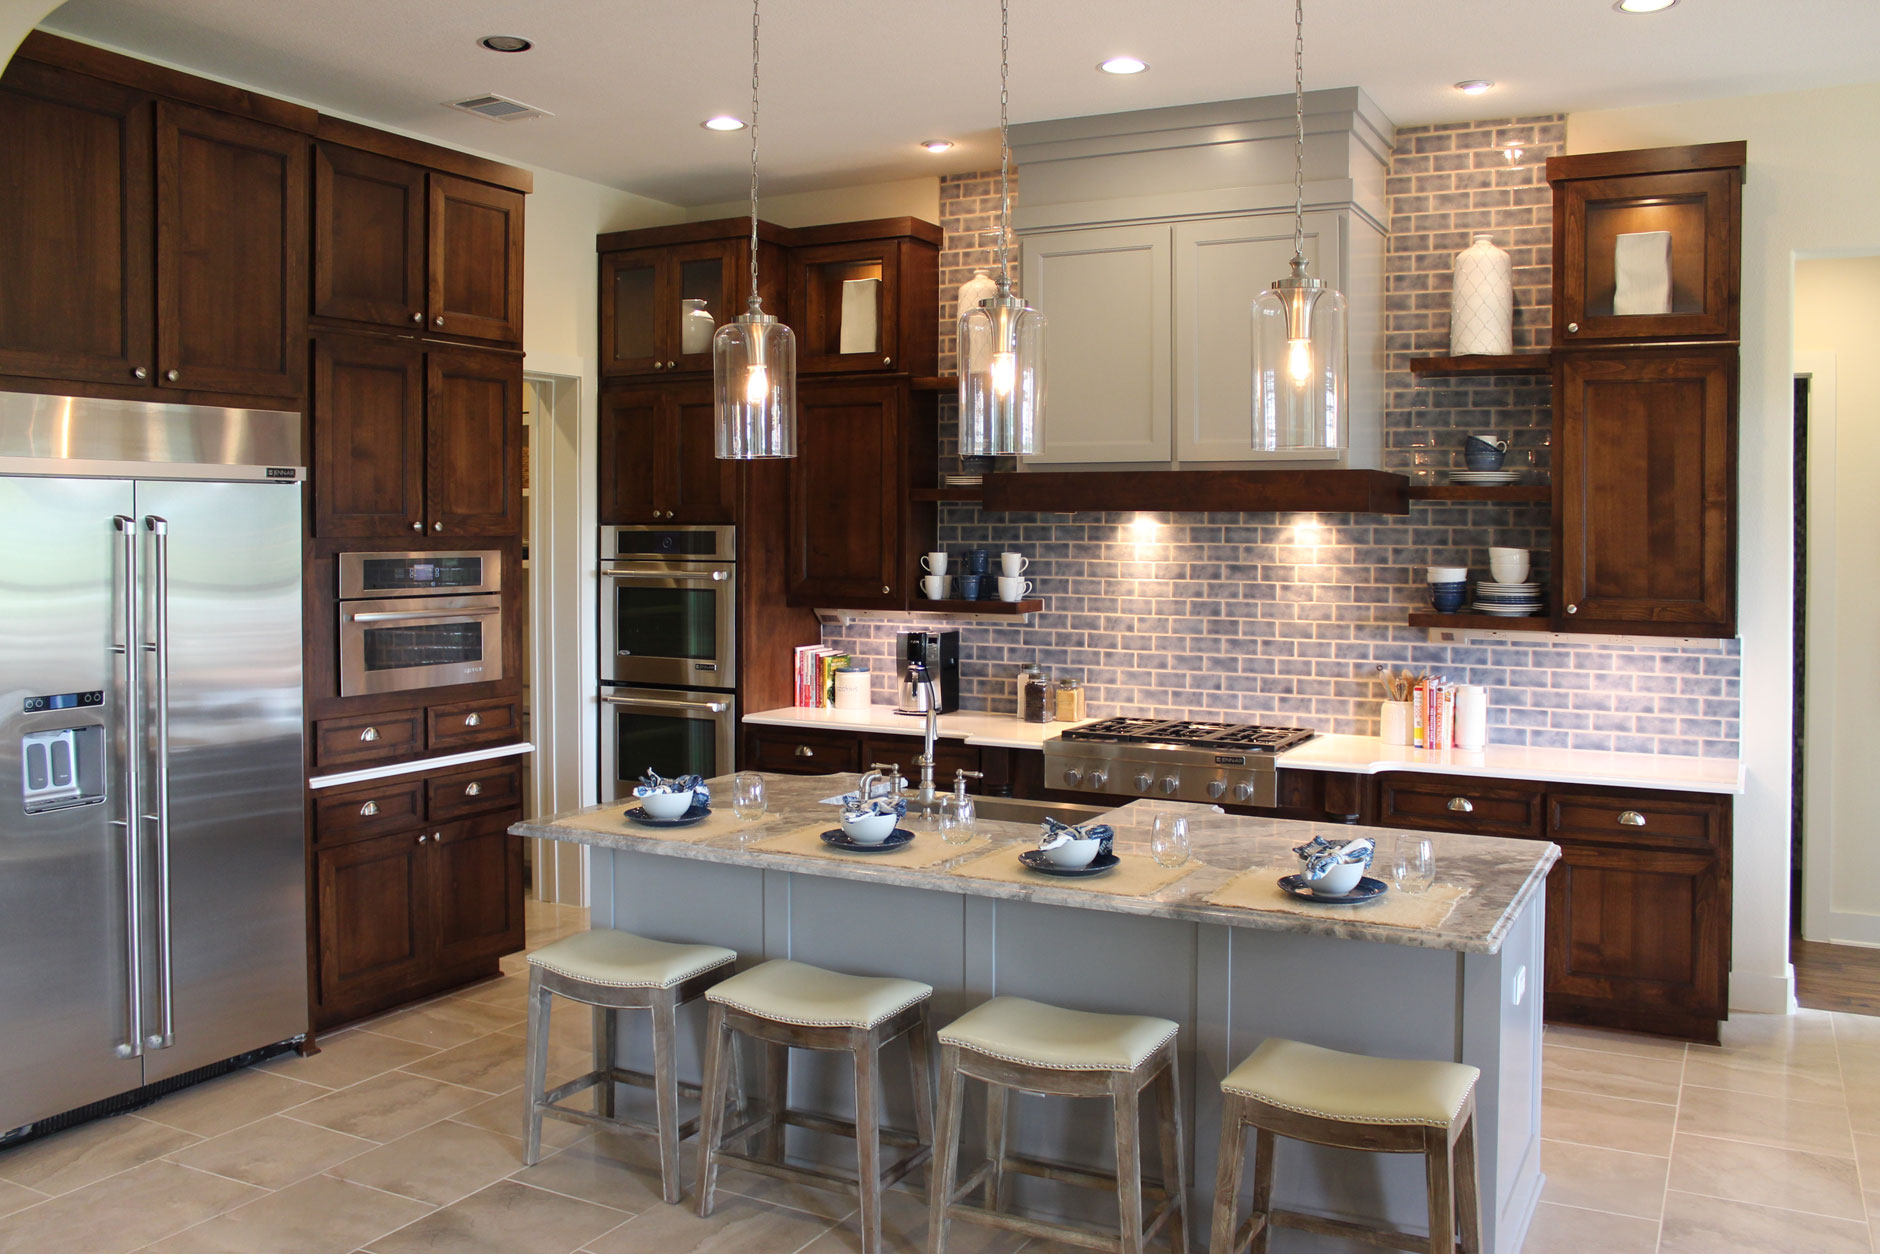 Kitchen cabinets with mitered cabinet doors M101 – MW6, FP1/4, cabinet doors in Beech, Select and Maple, Paint Grade